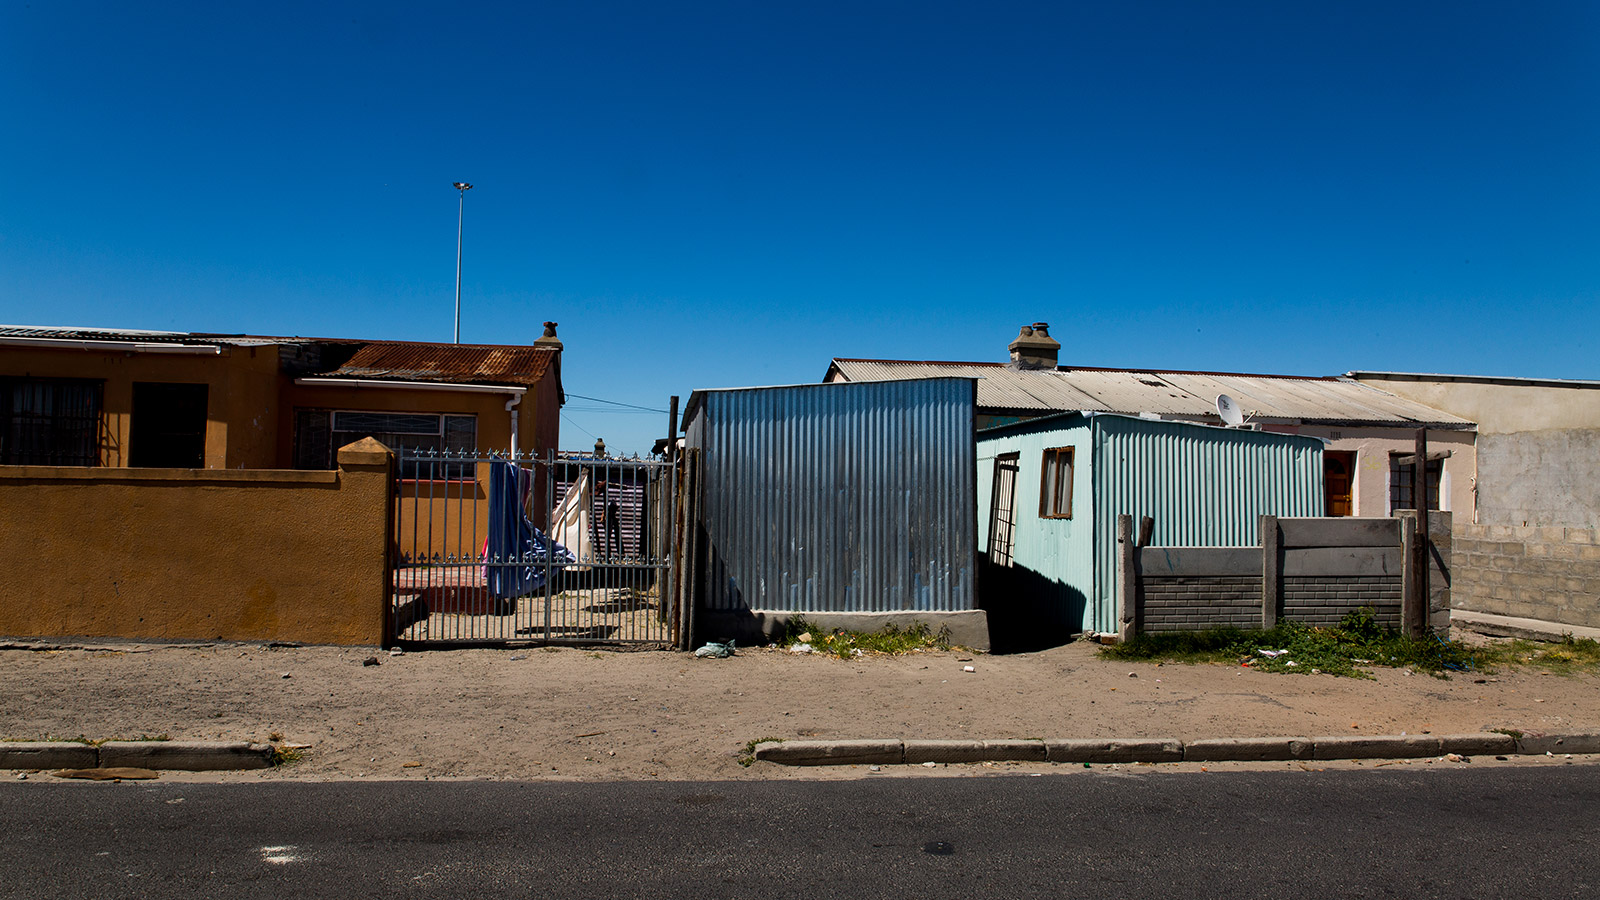 cape-town-and-langa-Michael-Bainbridge-048.jpg